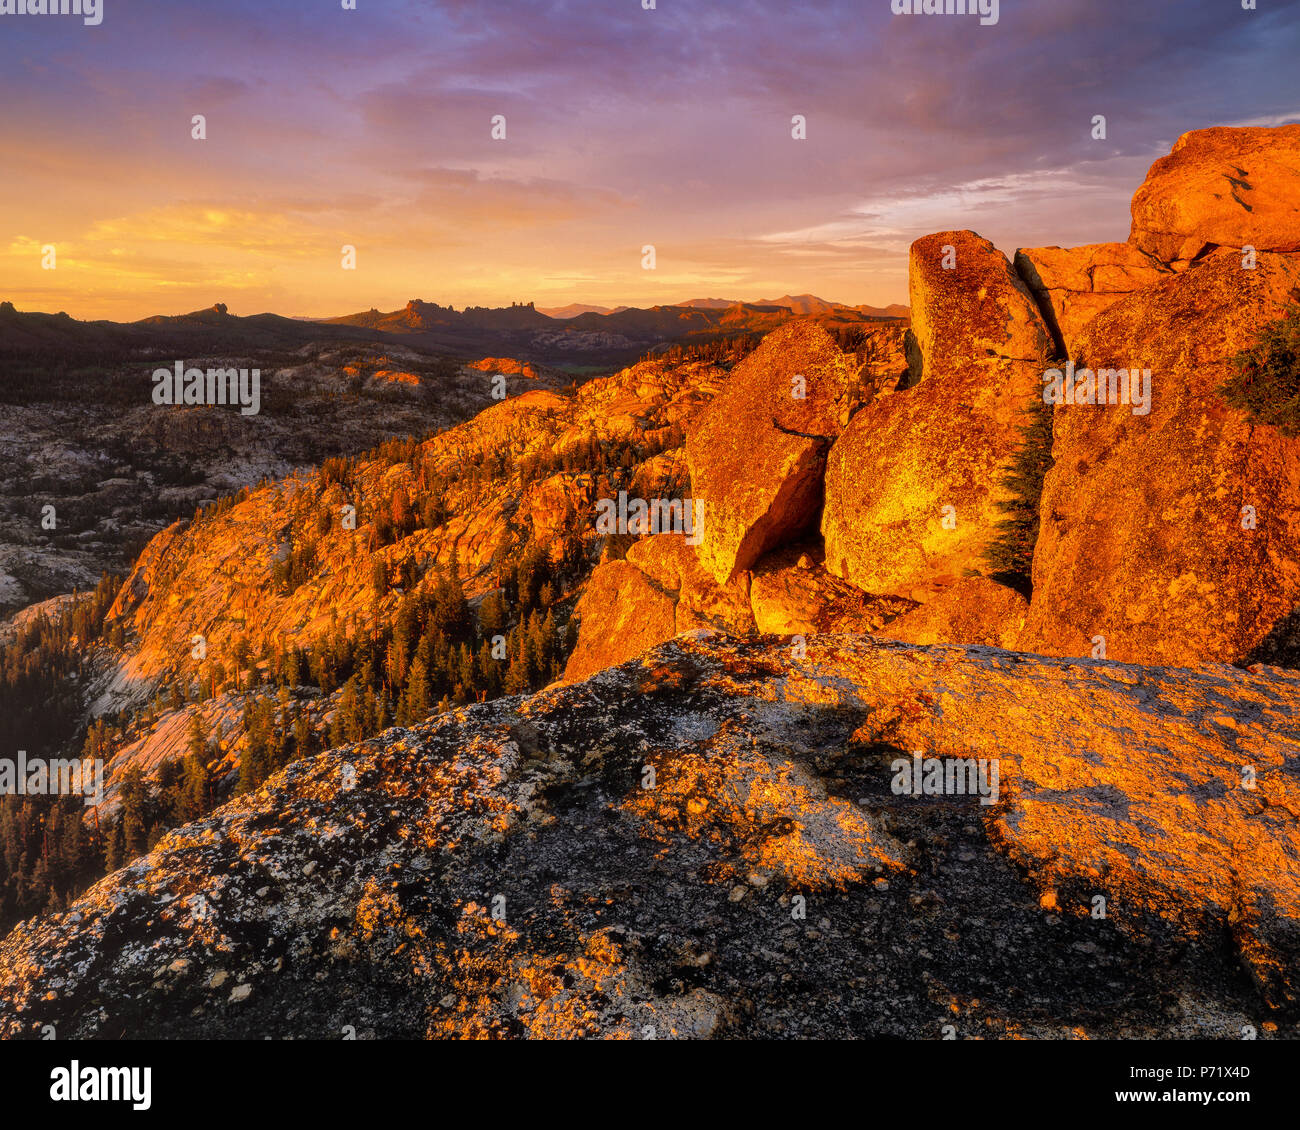 Sunset, Burst Rock Formation, Emigrant Wilderness, Stanislaus National Forest, Sierra Nevada, California - Stock Image